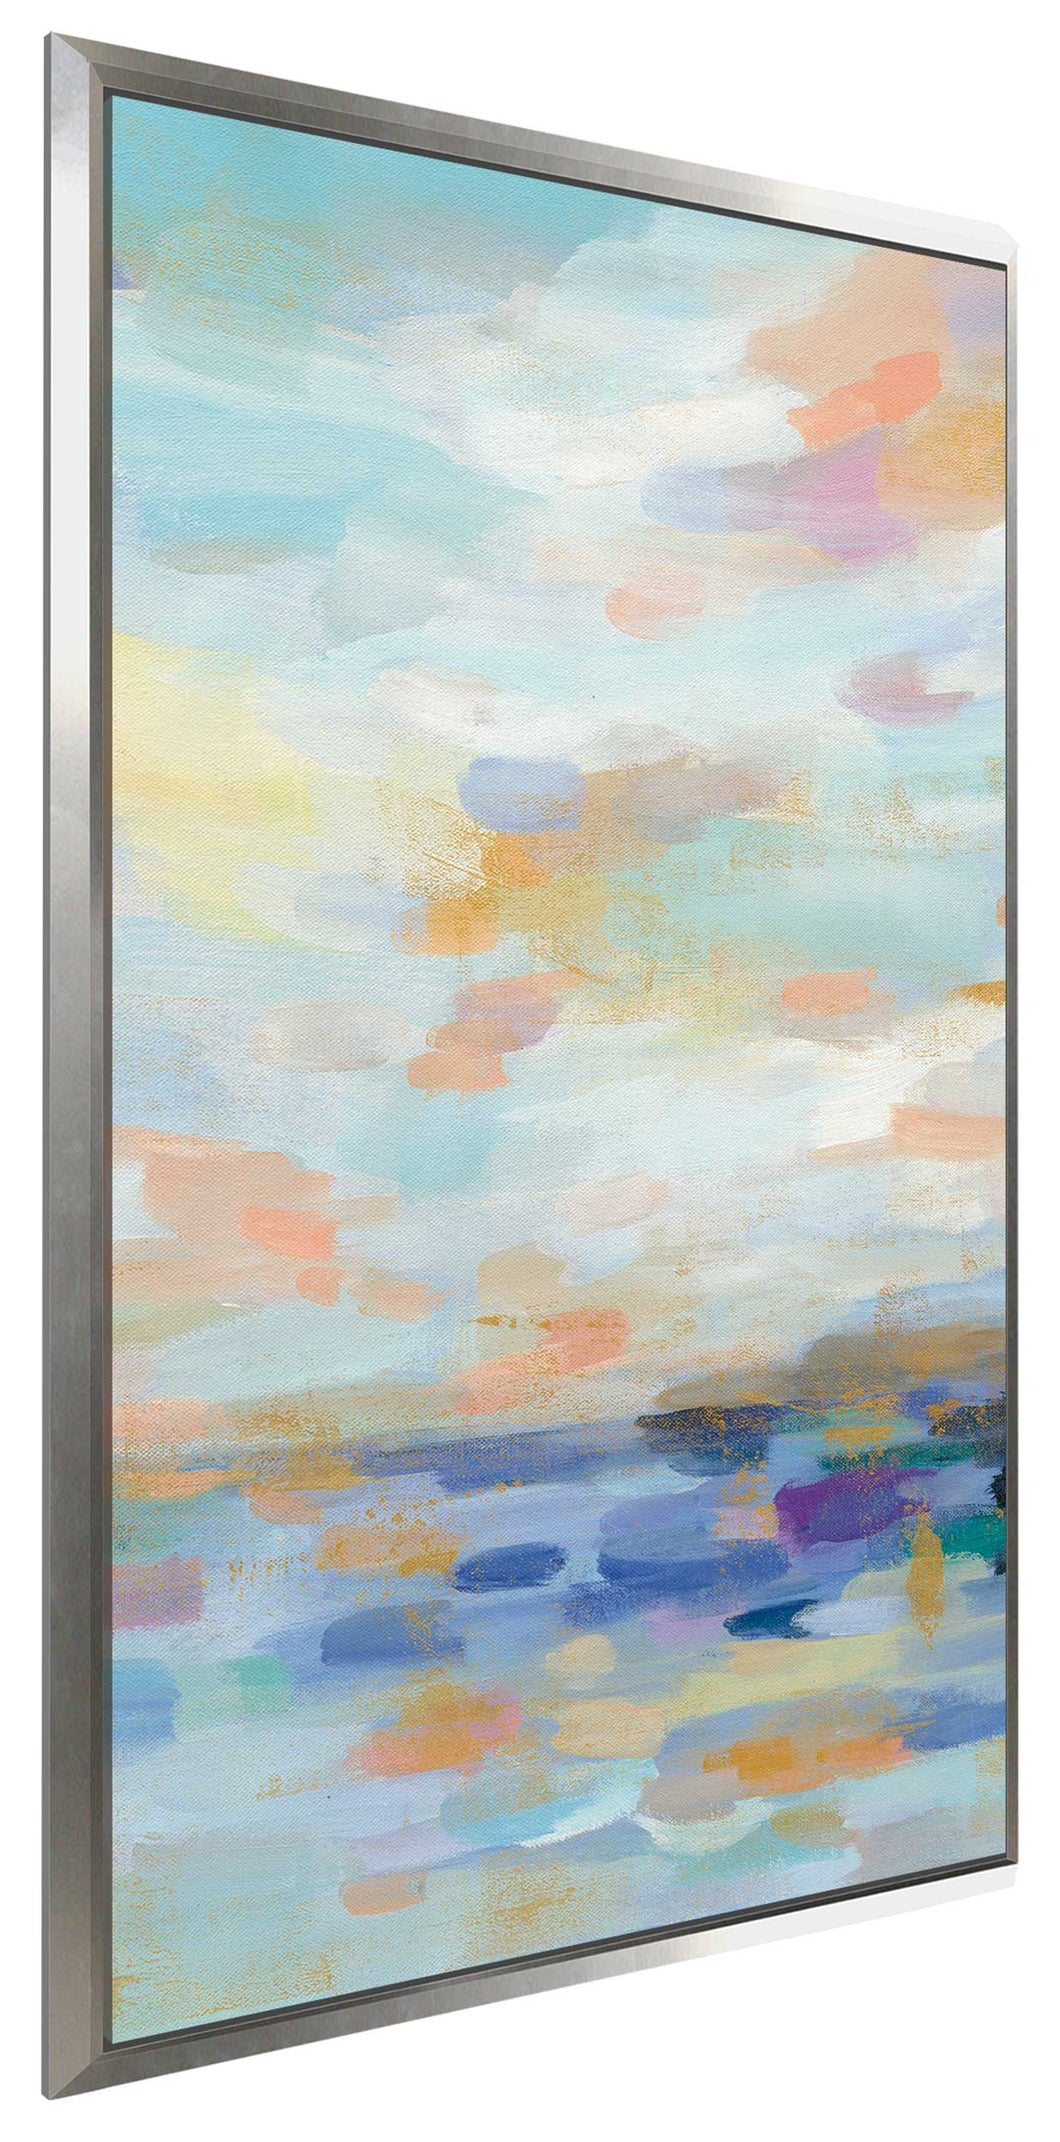 Golden Sunrise III by Silvia Vassileva Print on Canvas in Floating Frame Abstract,Blue art,Portrait Shape,All Floating Canvas,Silvia Vassileva